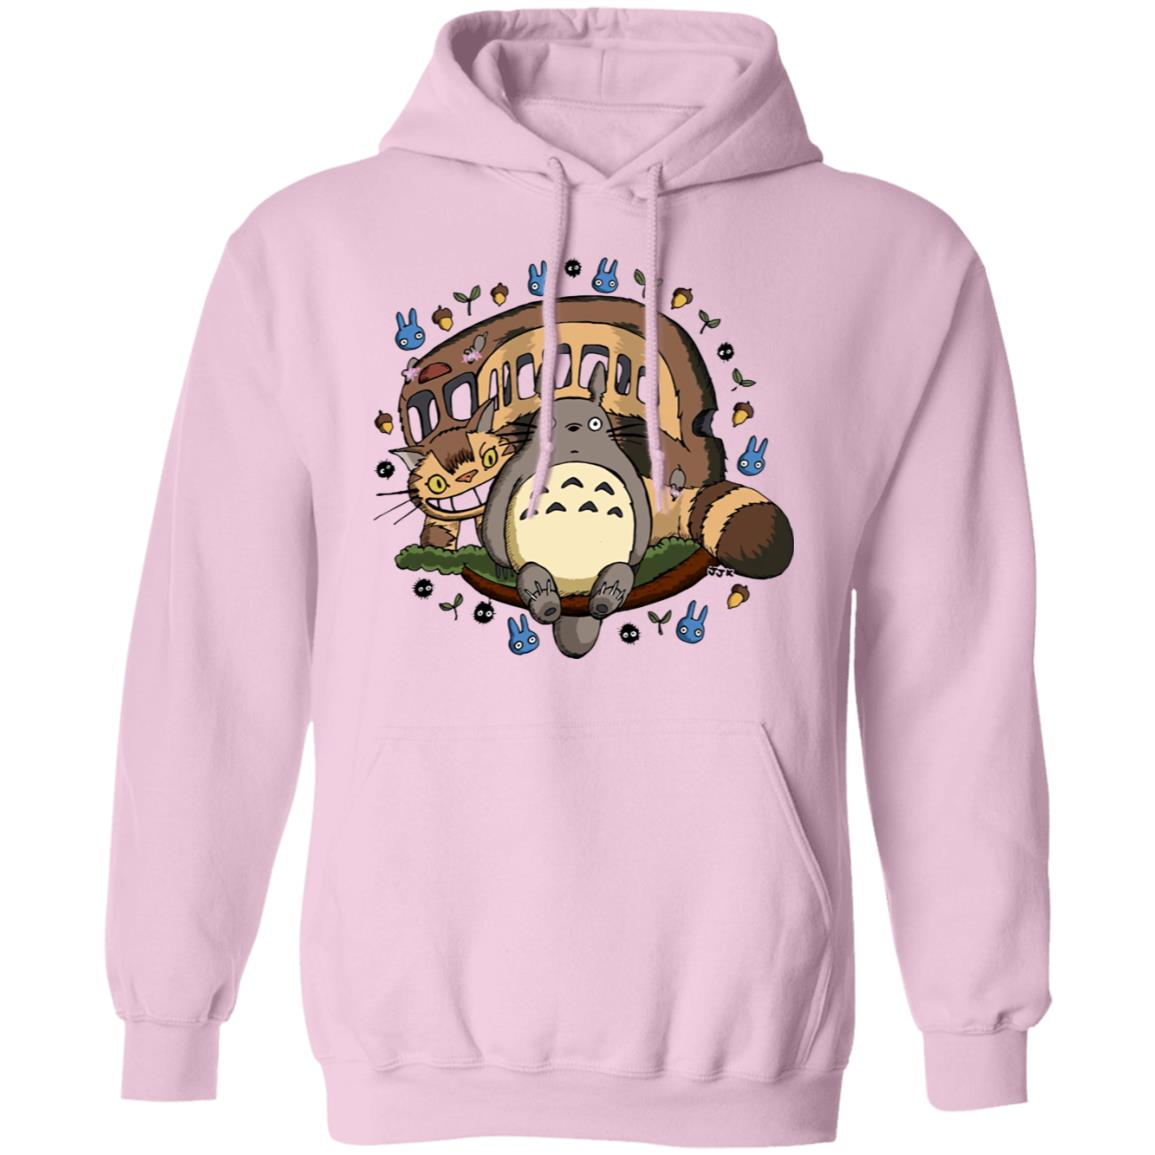 Totoro and the Catbus Hoodie